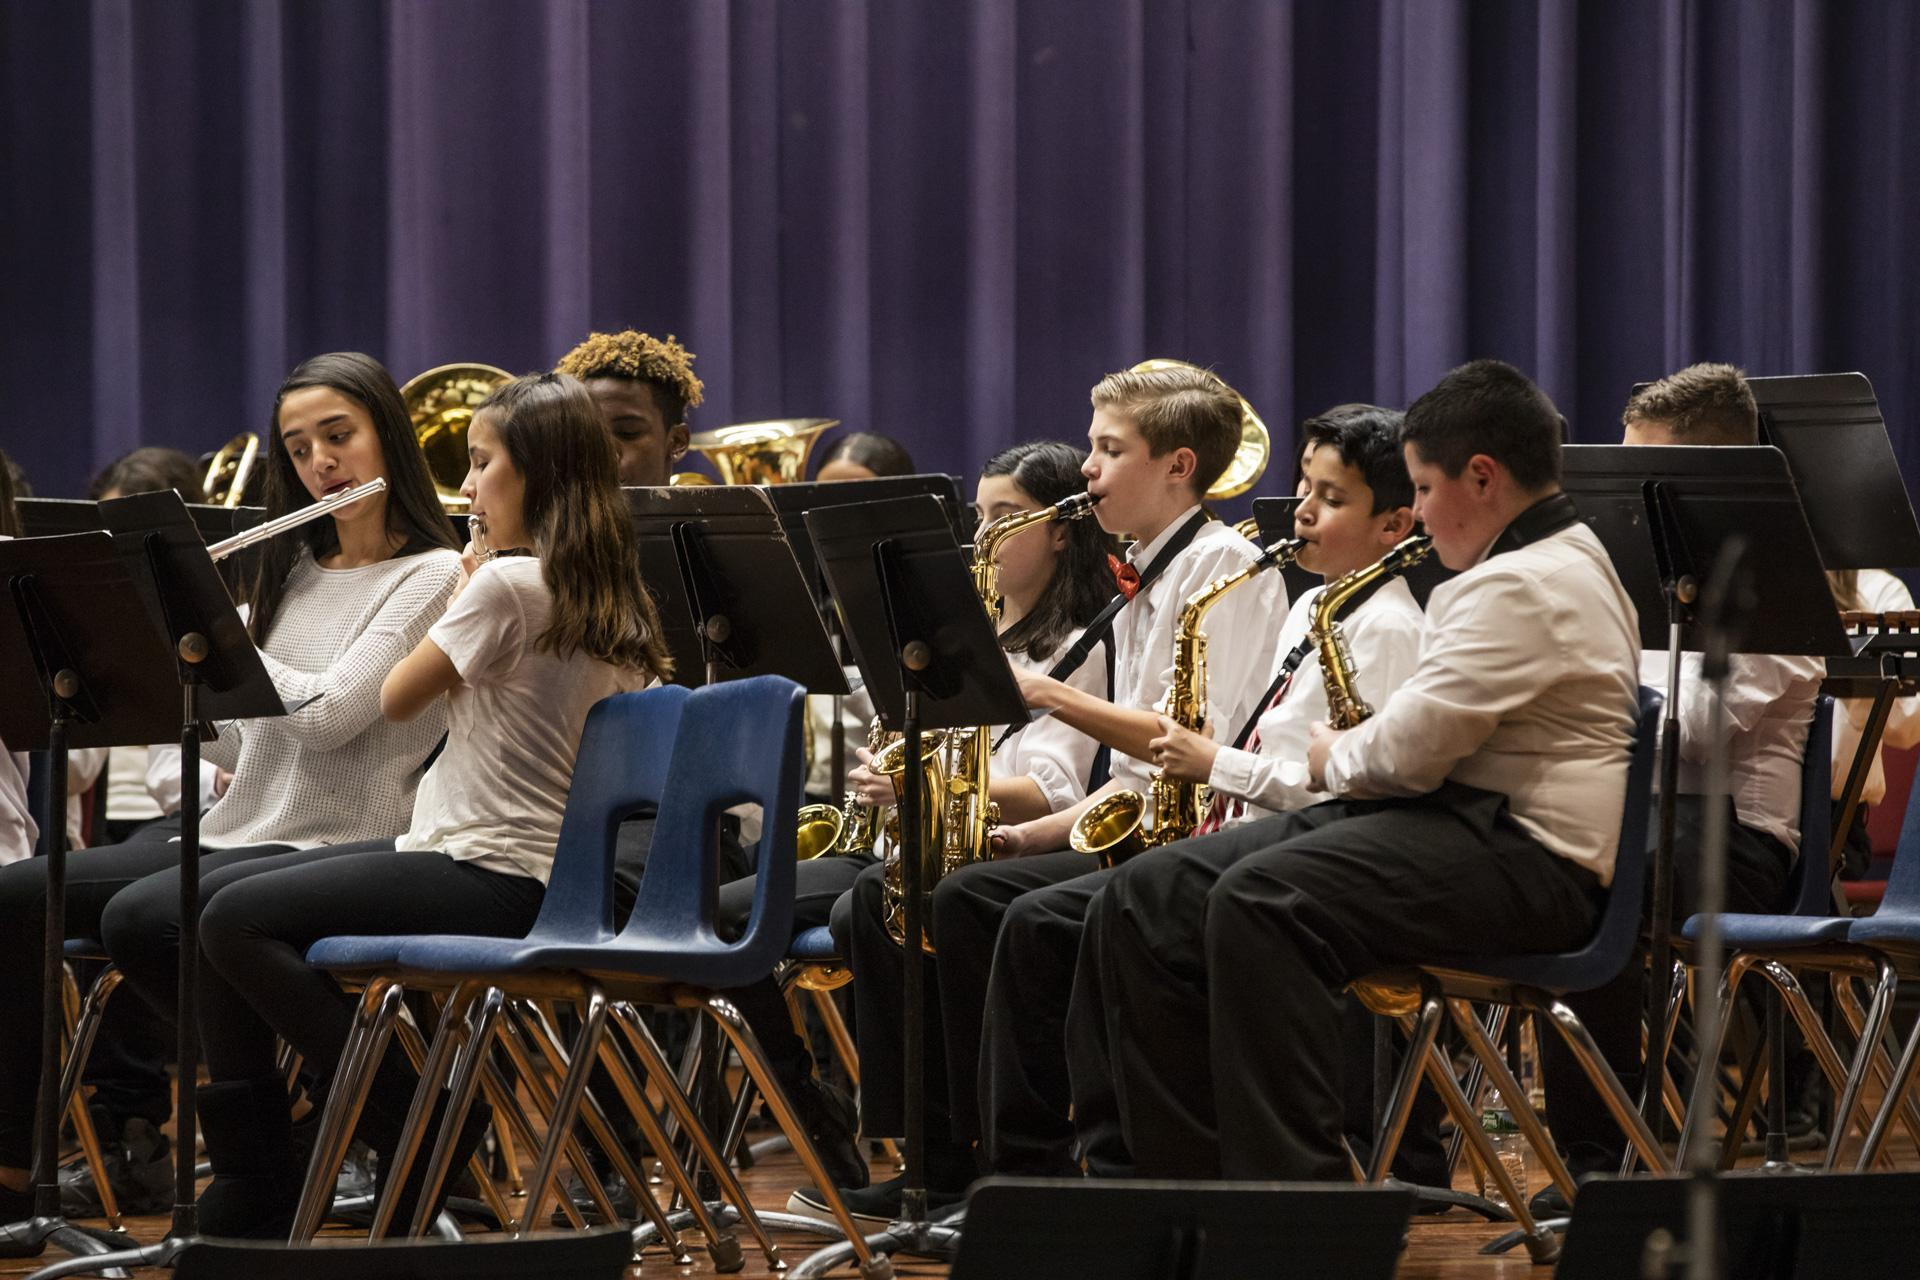 CHMS students playing instruments at concert